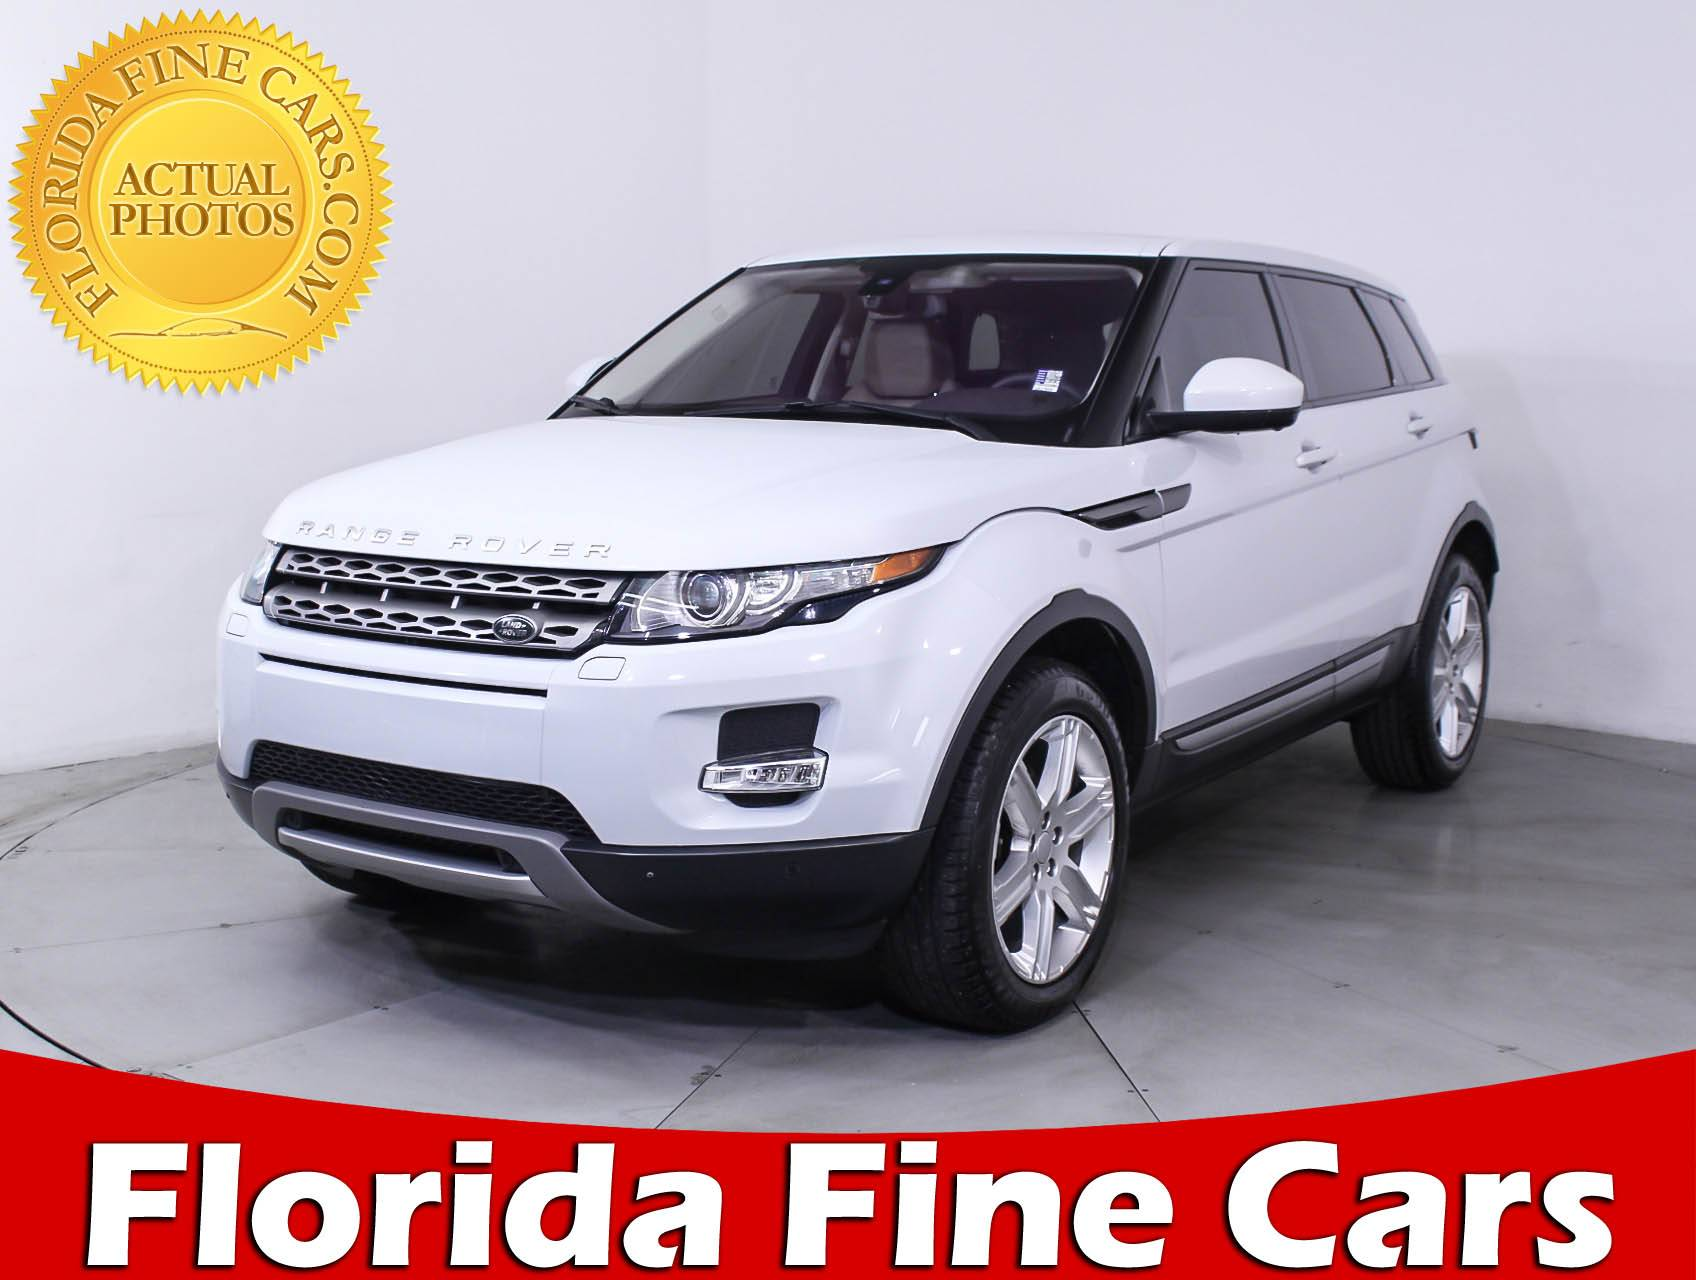 Used 2015 LAND ROVER RANGE ROVER EVOQUE PURE PREMIUM SUV for sale